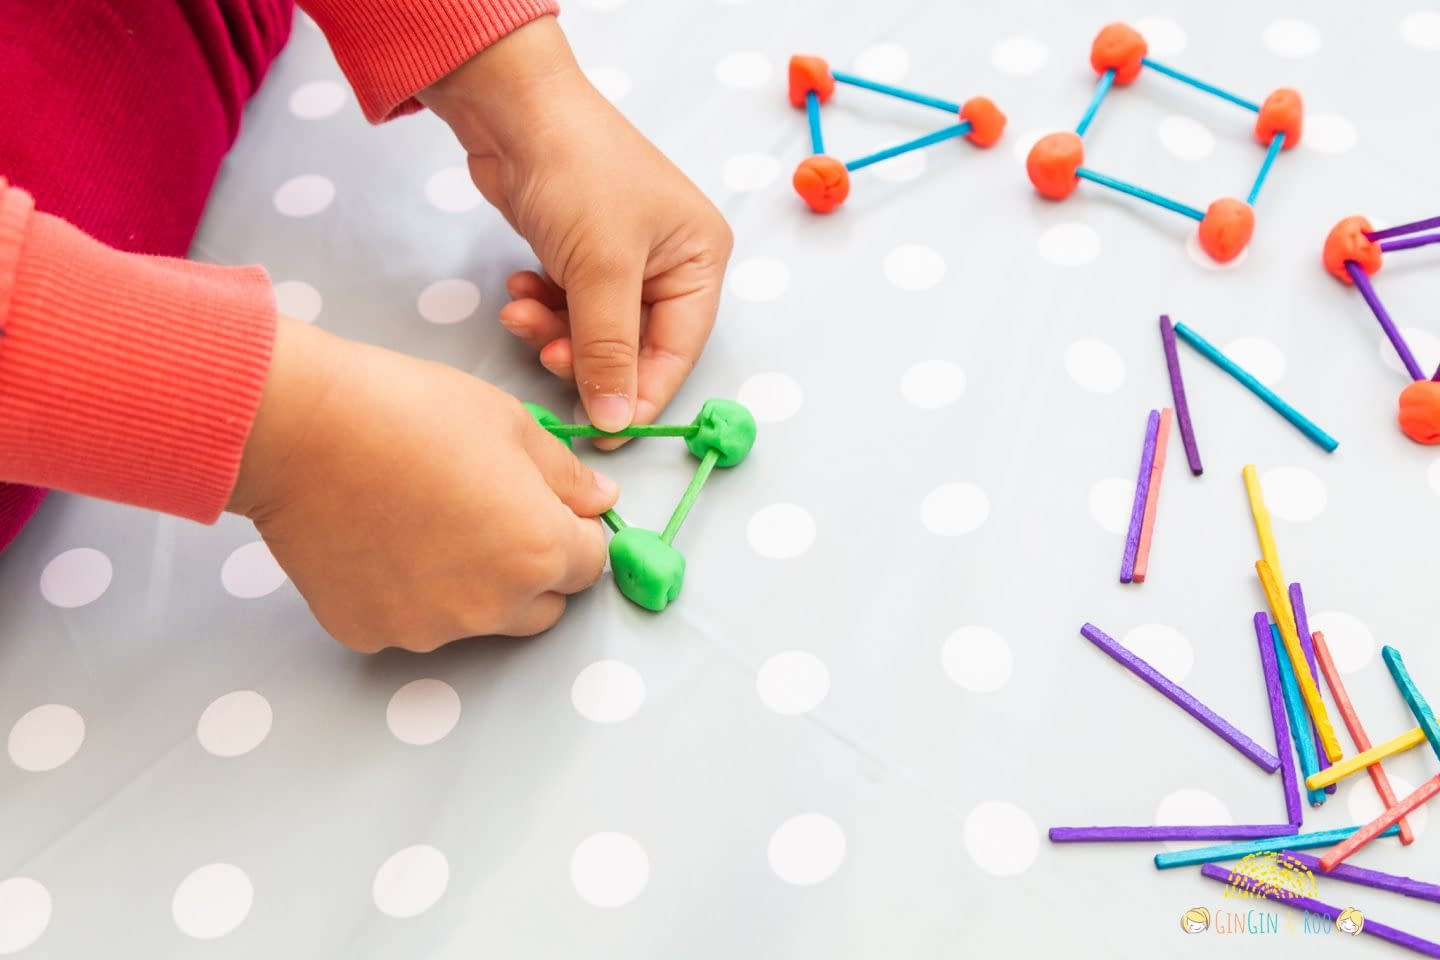 Maths is fun. No really, it is! Give this fun maths activity a try with your kids. They will love it. And they'll learn while they're playing, which is definitely a winner if you're stuck for ideas of fun maths home learning activities that also keep the kiddos entertained. #toddleractivity #toddlereducation #toddlerlearn